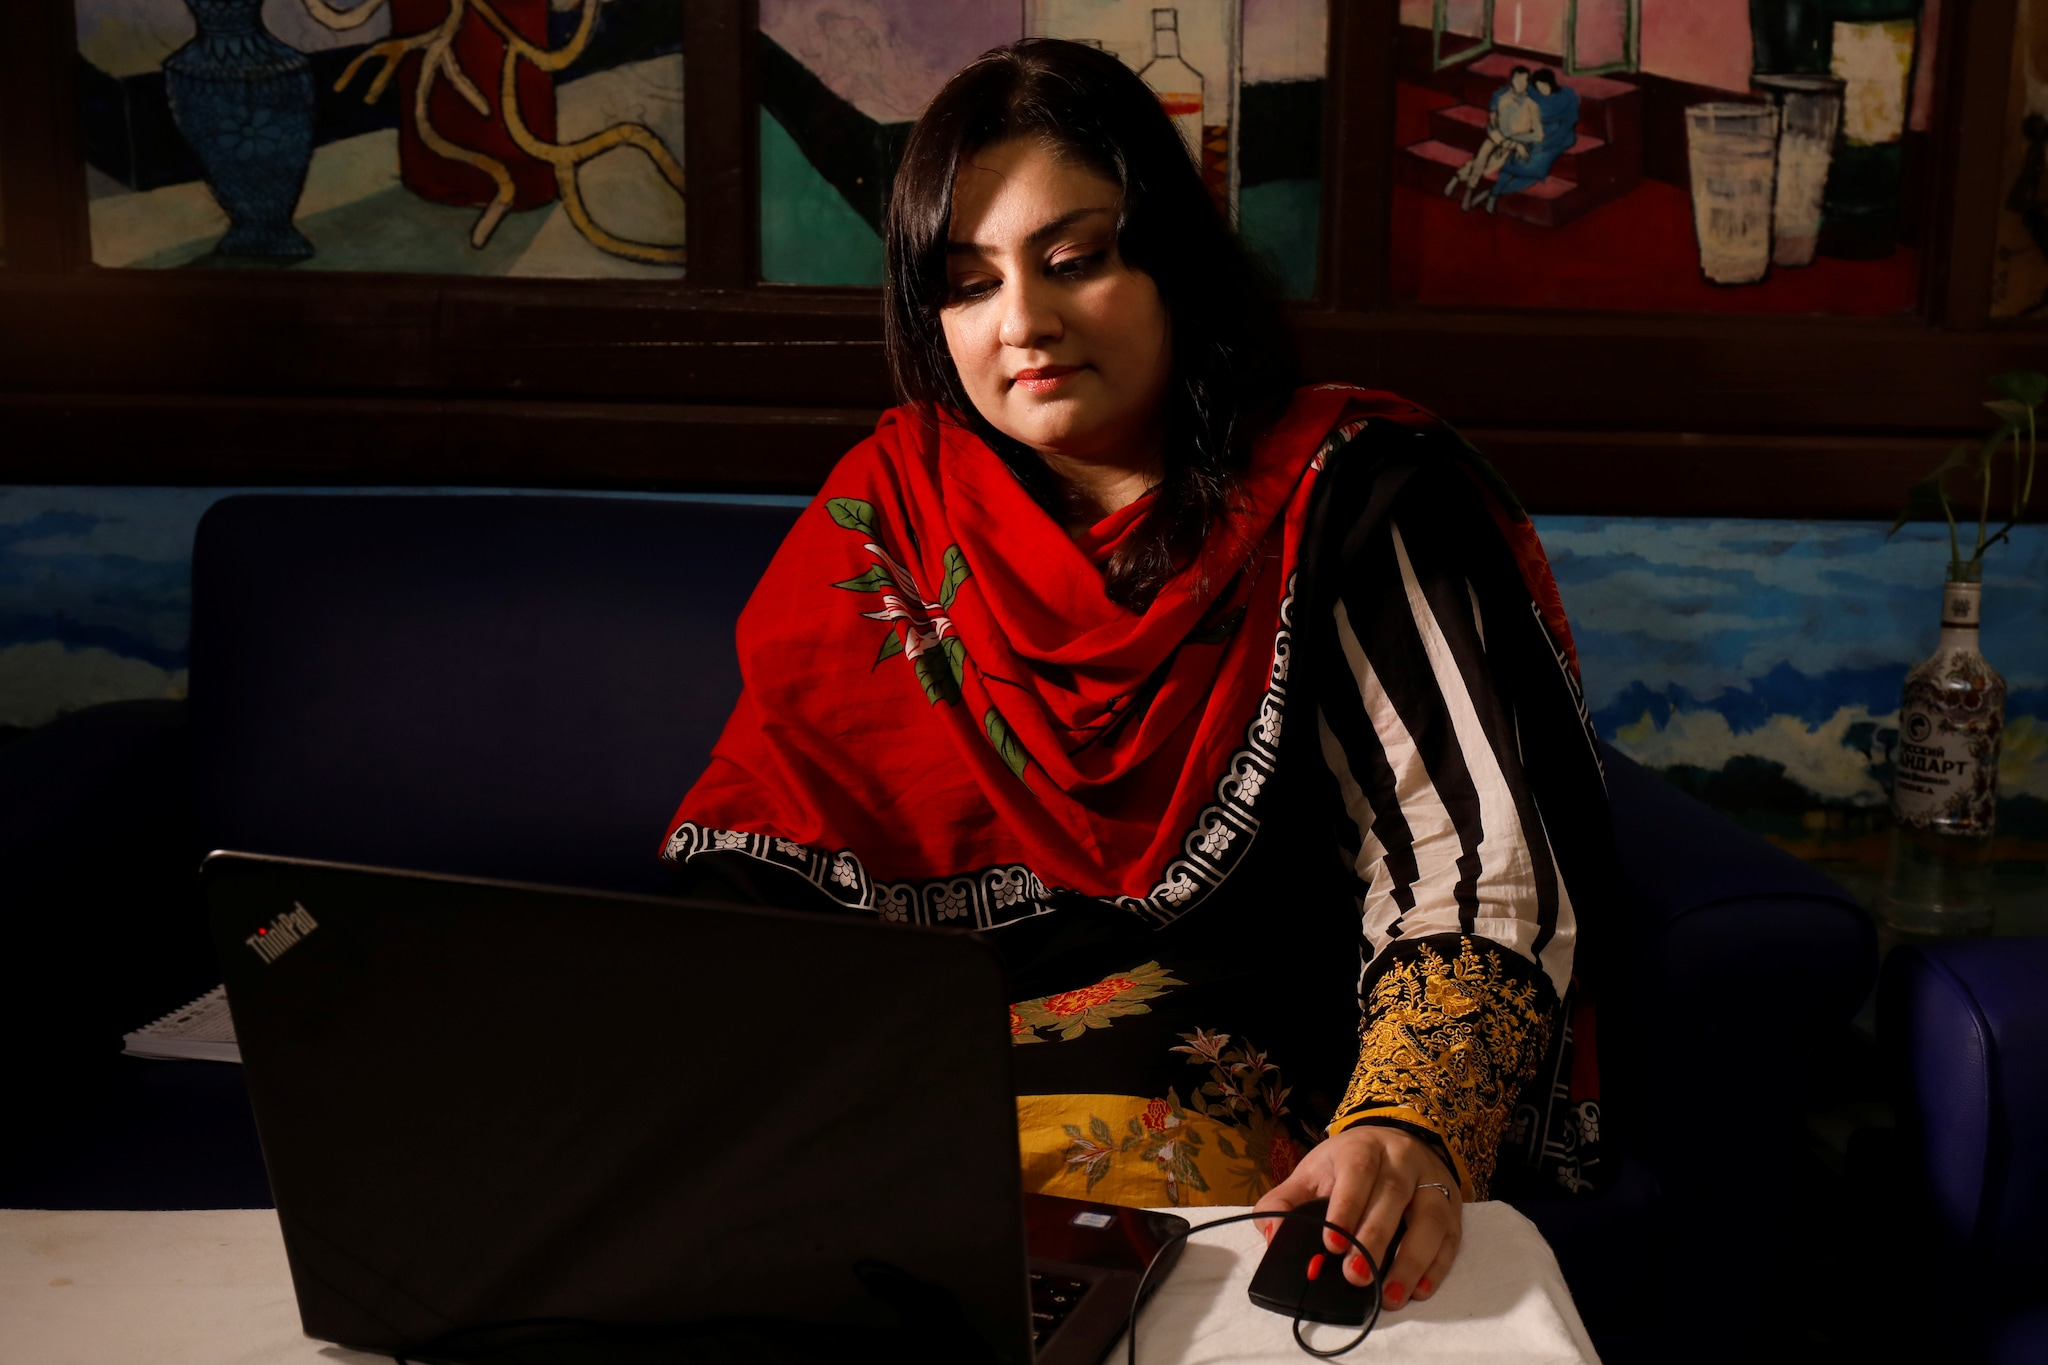 Mah Jabeen, 36, who runs a Meghan Markle fan page, is seen working on computer during an interview with Reuters, ahead of the birth of Prince Harry and Meghan's first baby, in Karachi, Pakistan April 11, 2019. REUTERS/Akhtar Soomro/Files